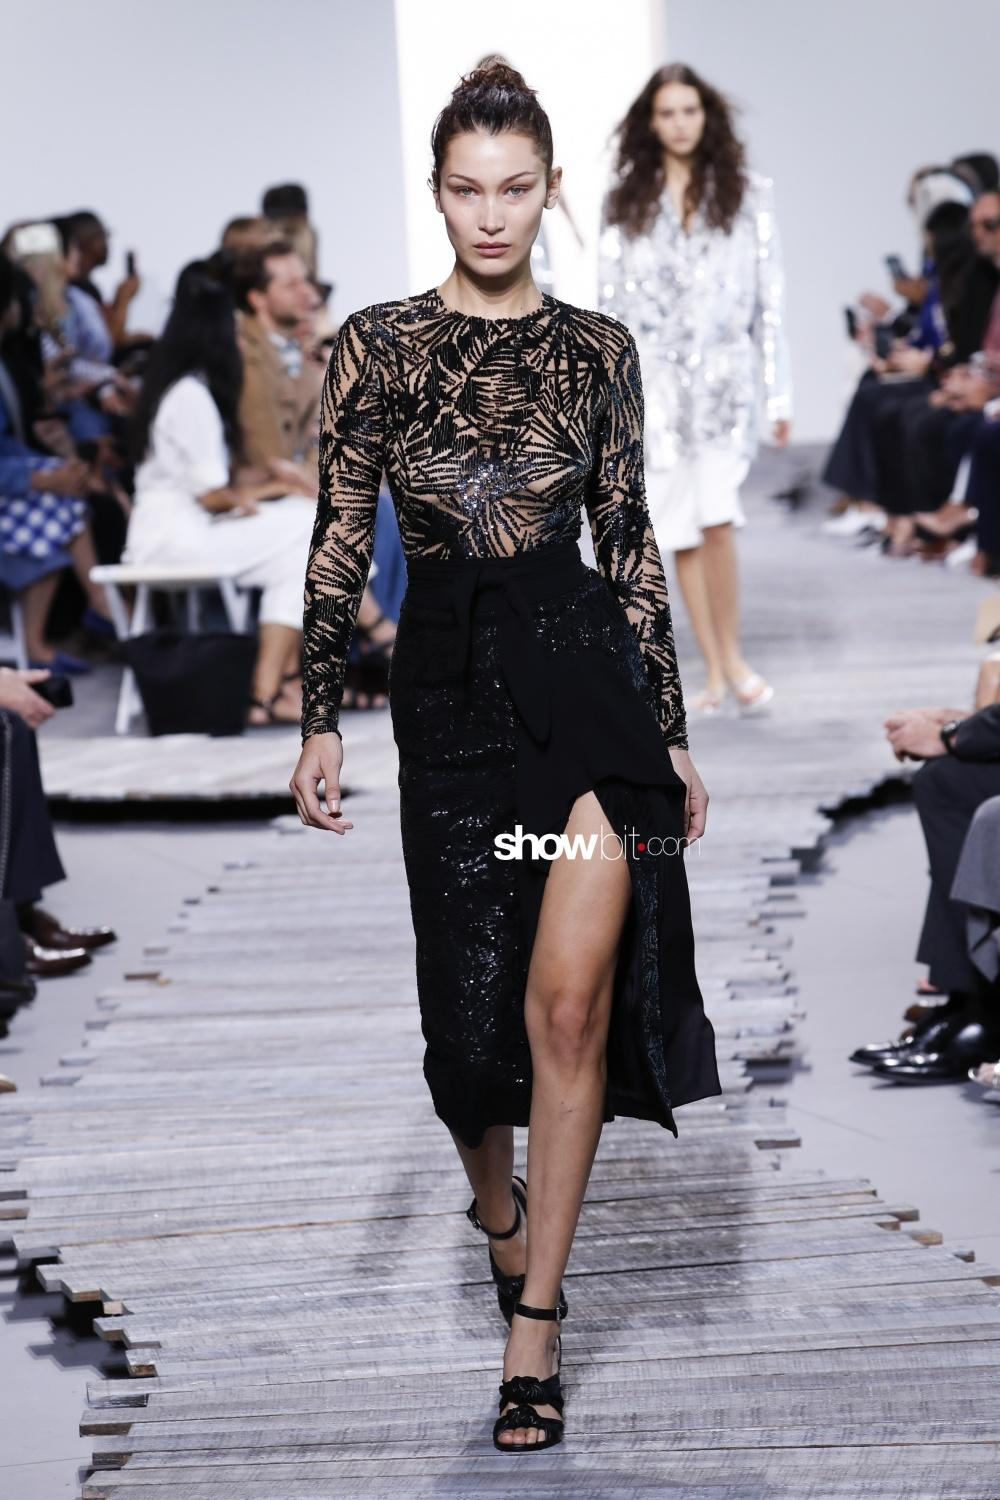 7974d275c0f8 New York Fashion Week Spring Summer 2018  Michael Kors